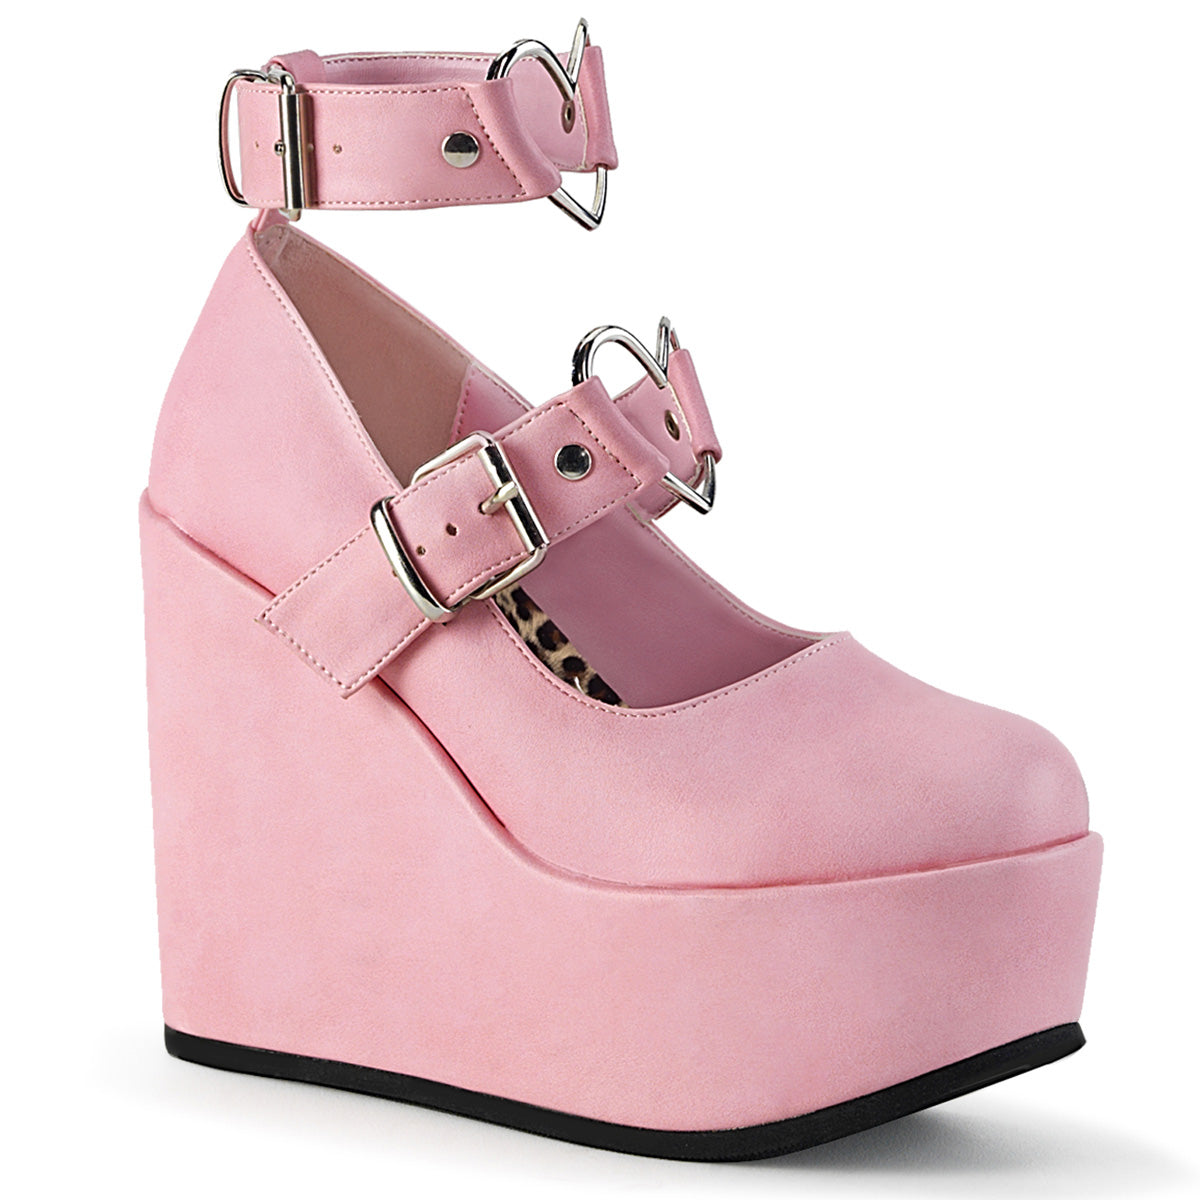 POISON-99-2  Baby Pink Vegan Leather